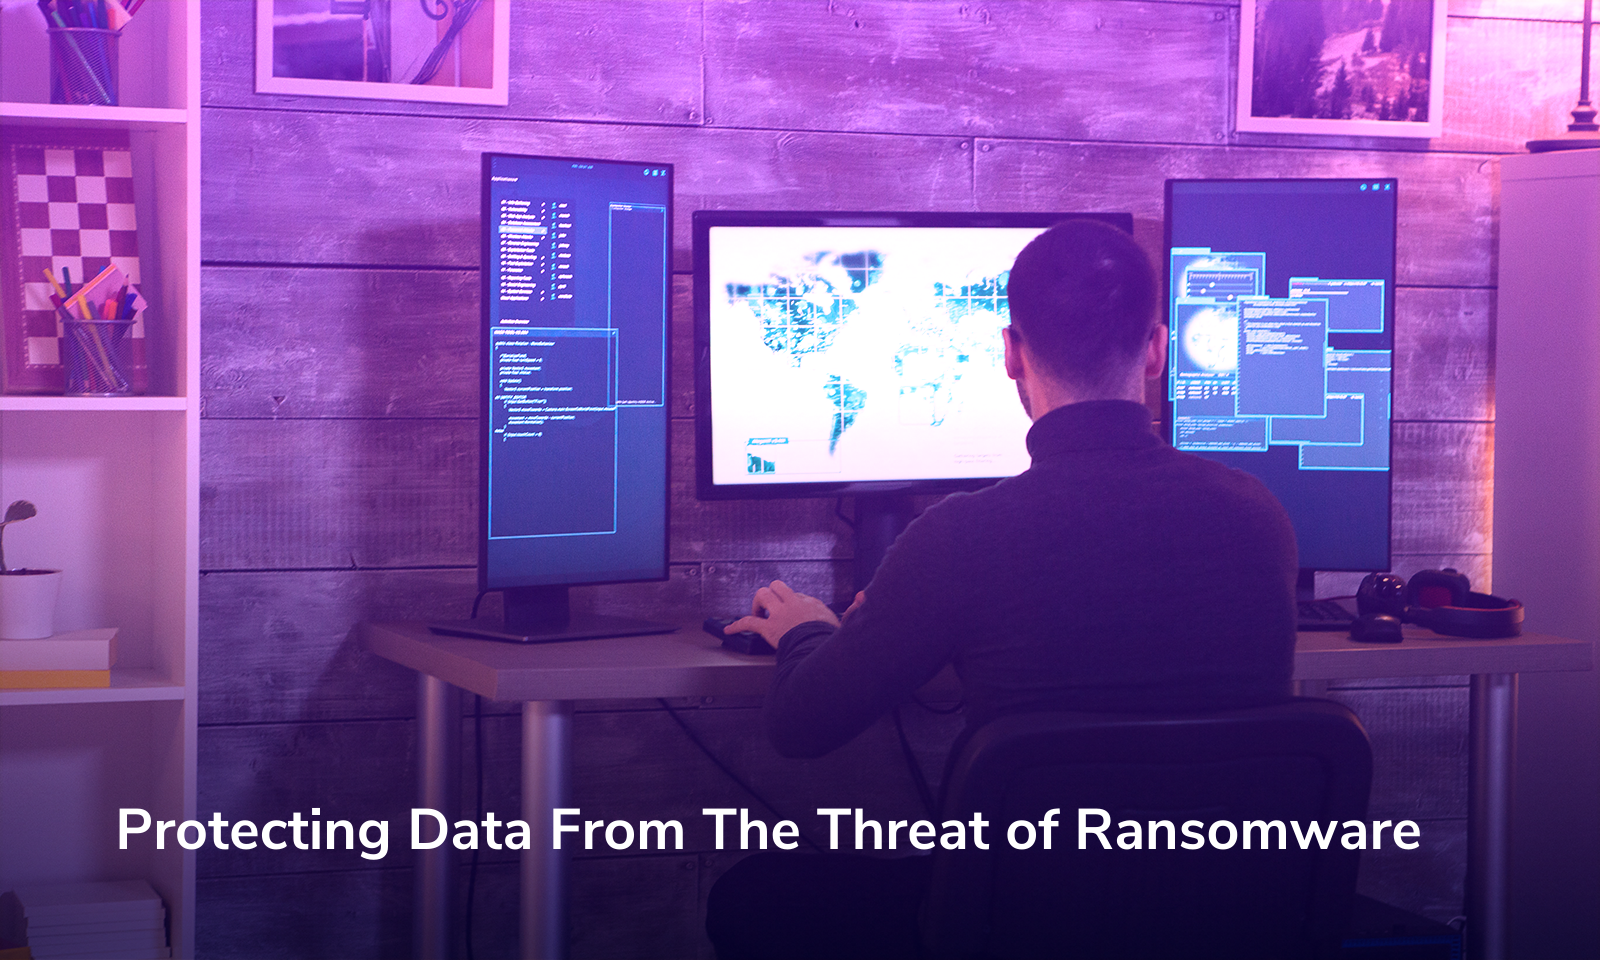 Protecting Data From The Threat of Ransomware